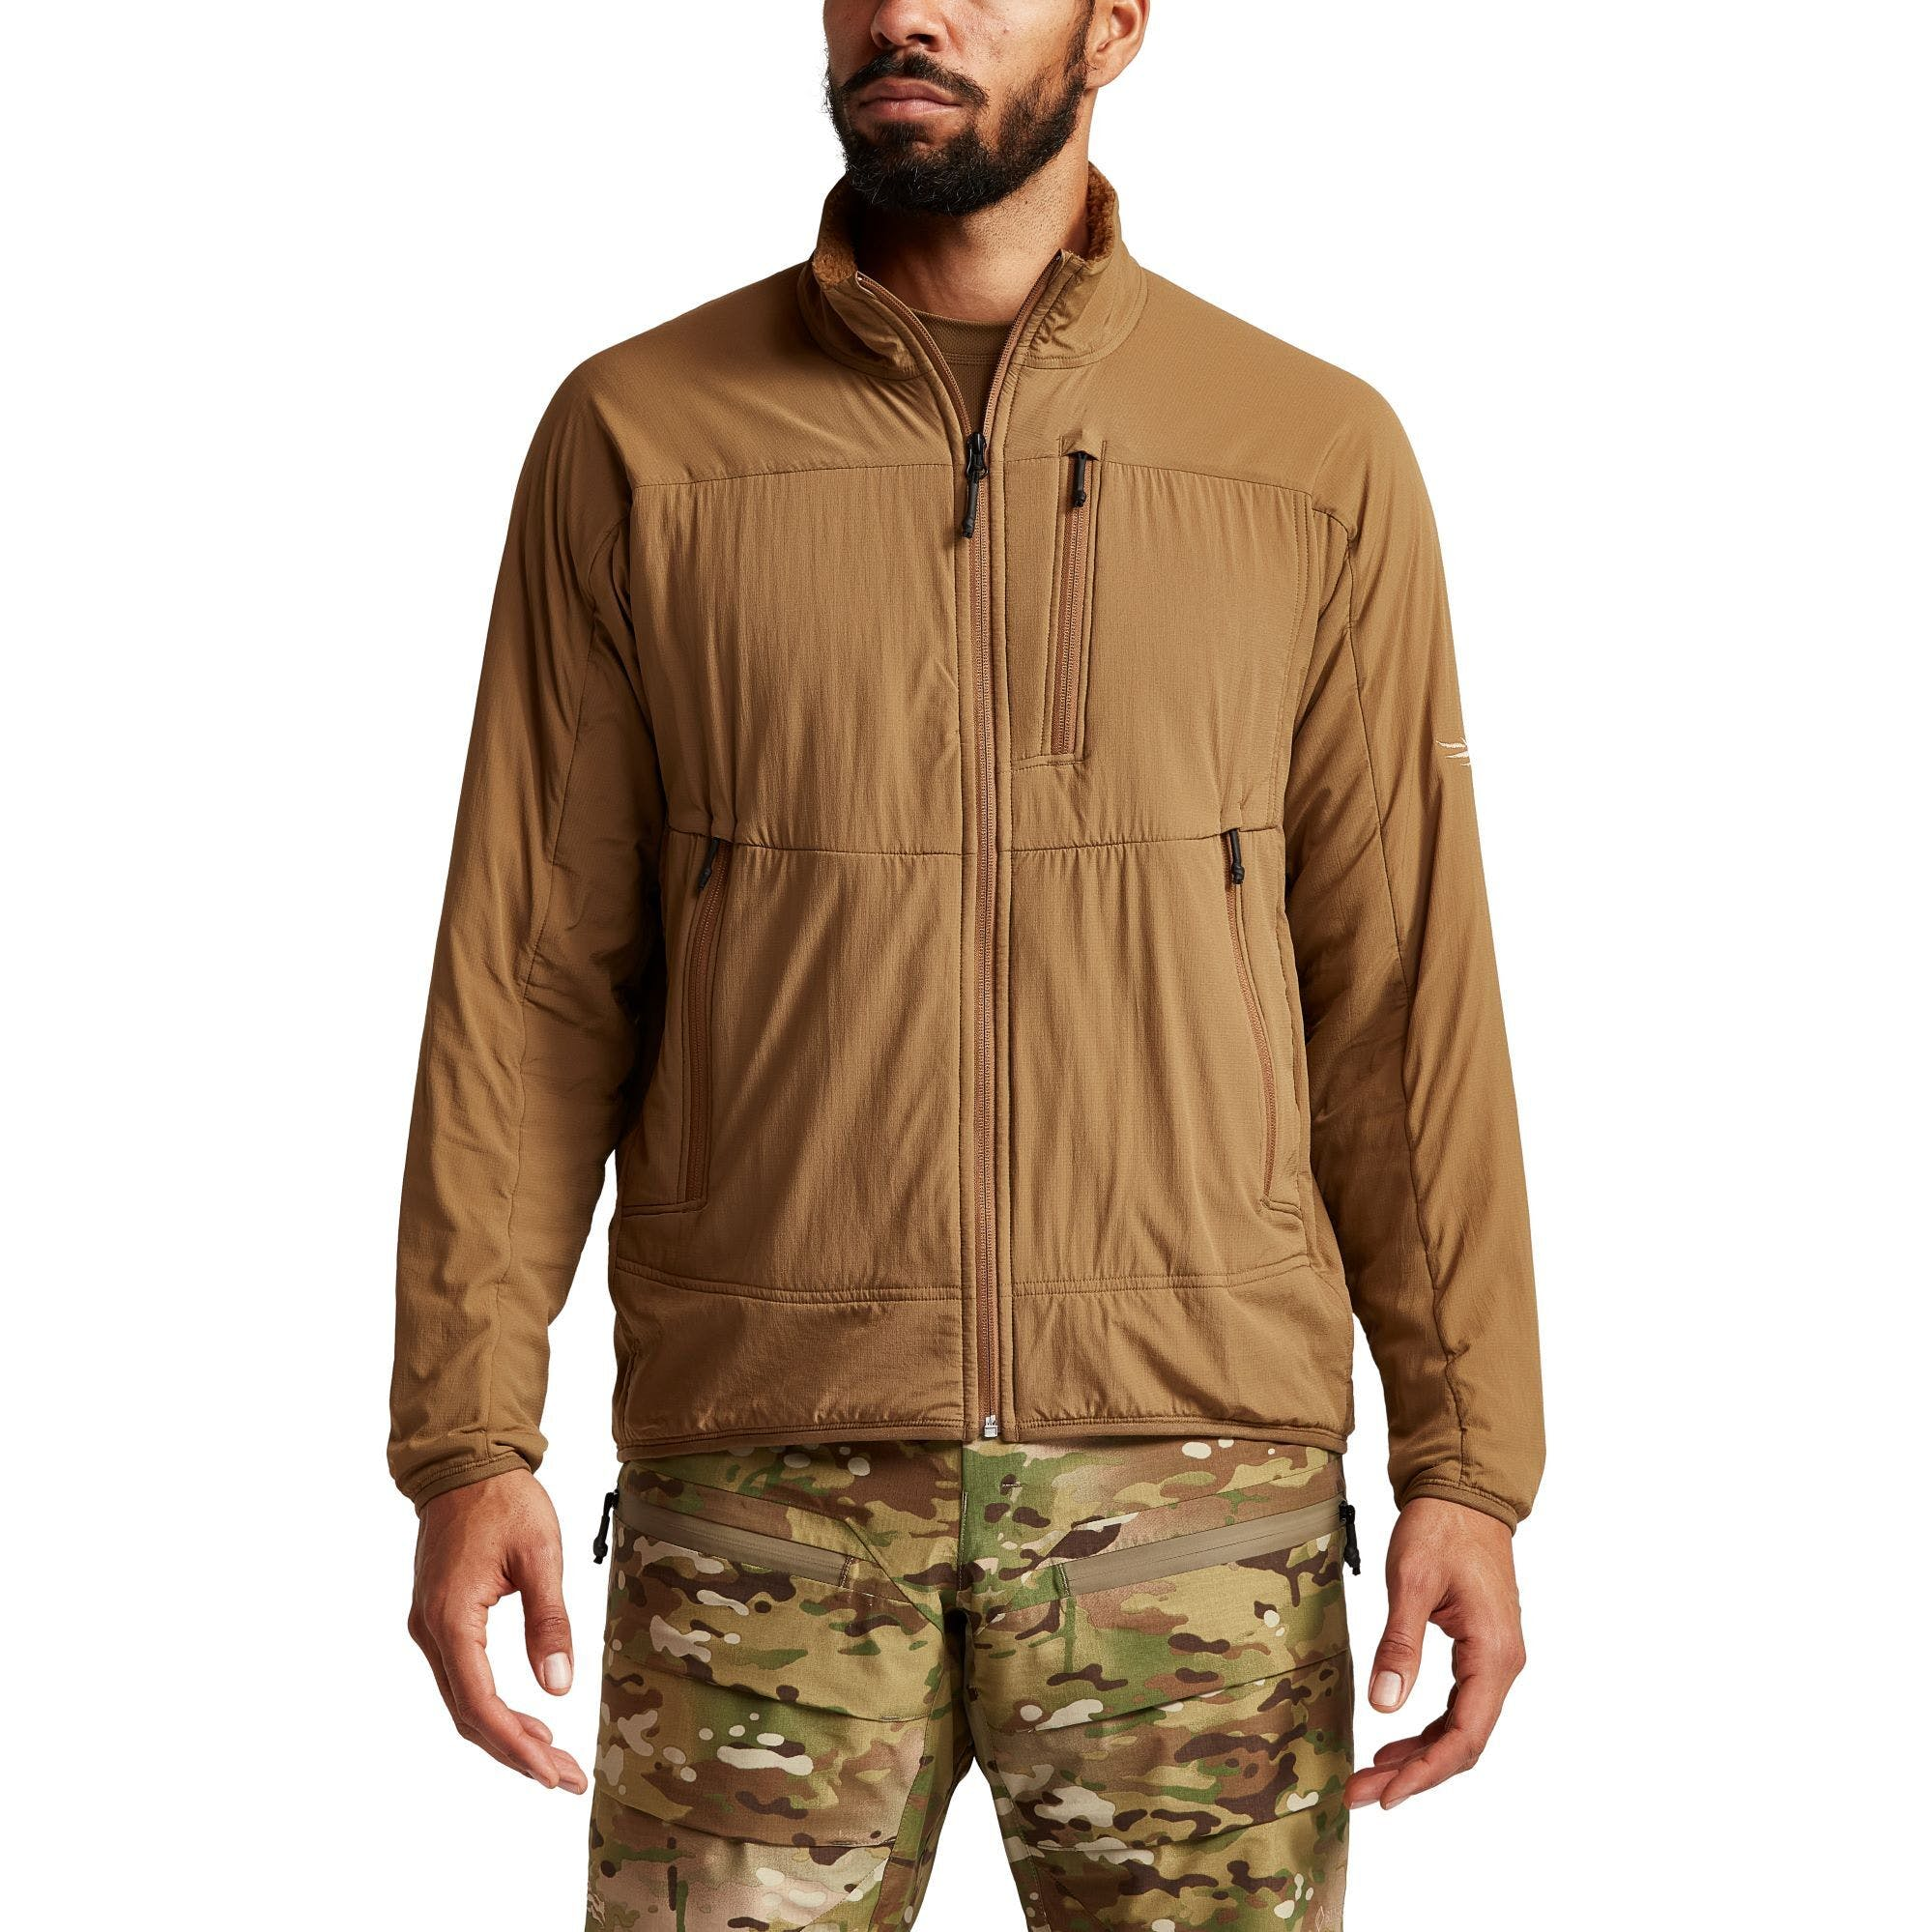 Img SITKA SOF 2021 30077 CY Mens MLX Jacket MD Wi Coyote Studio 2639